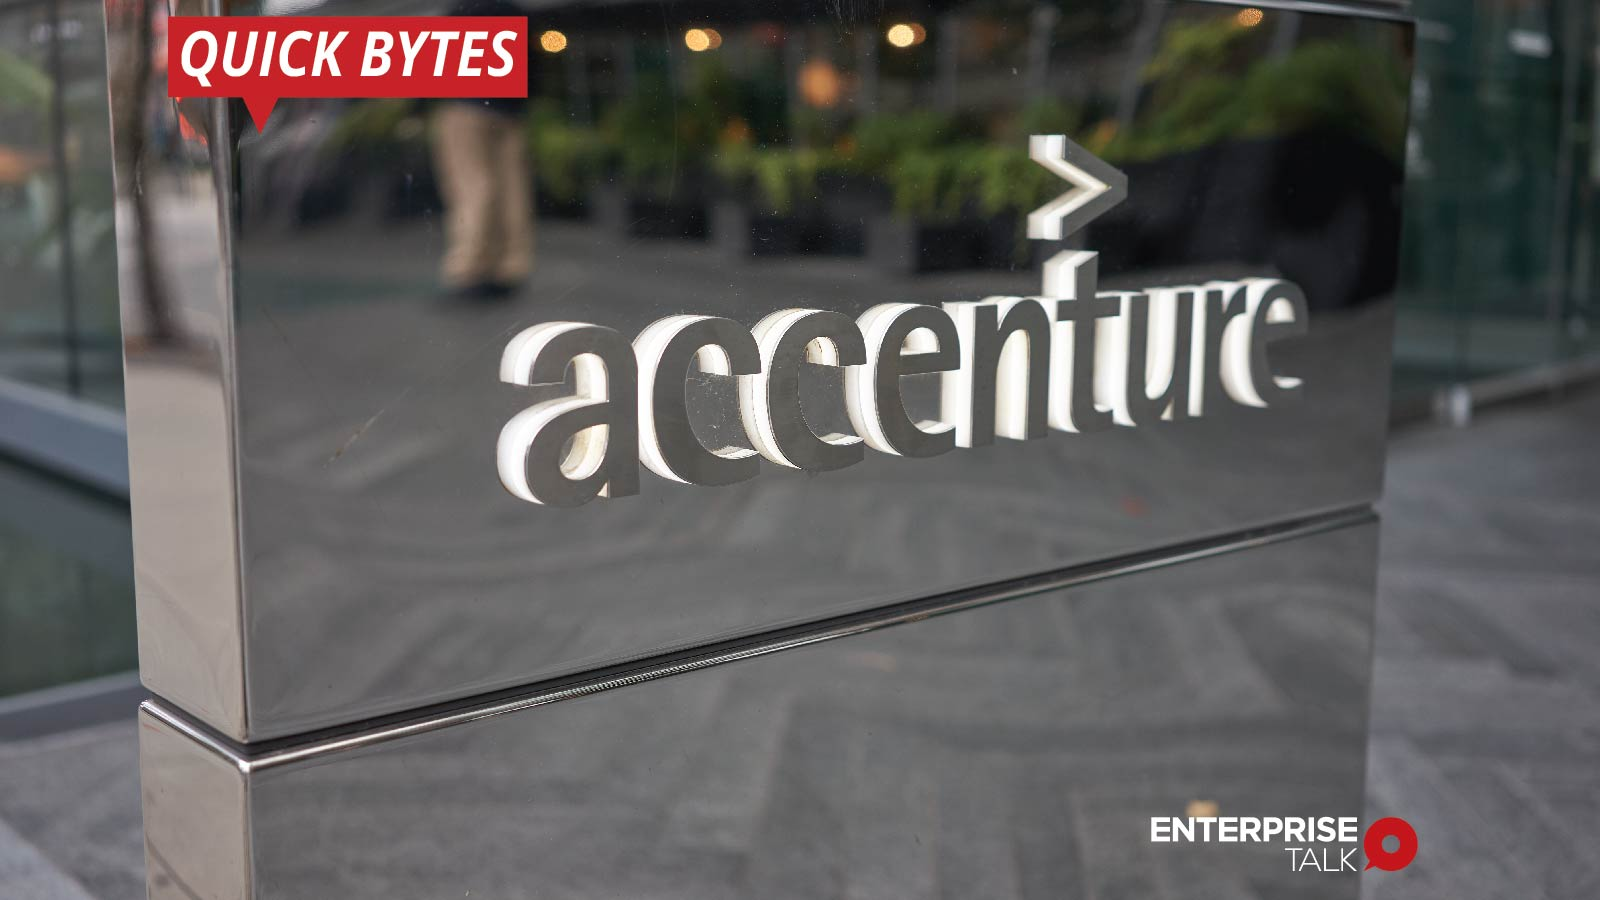 Accenture doubles down on their cloud business (1)